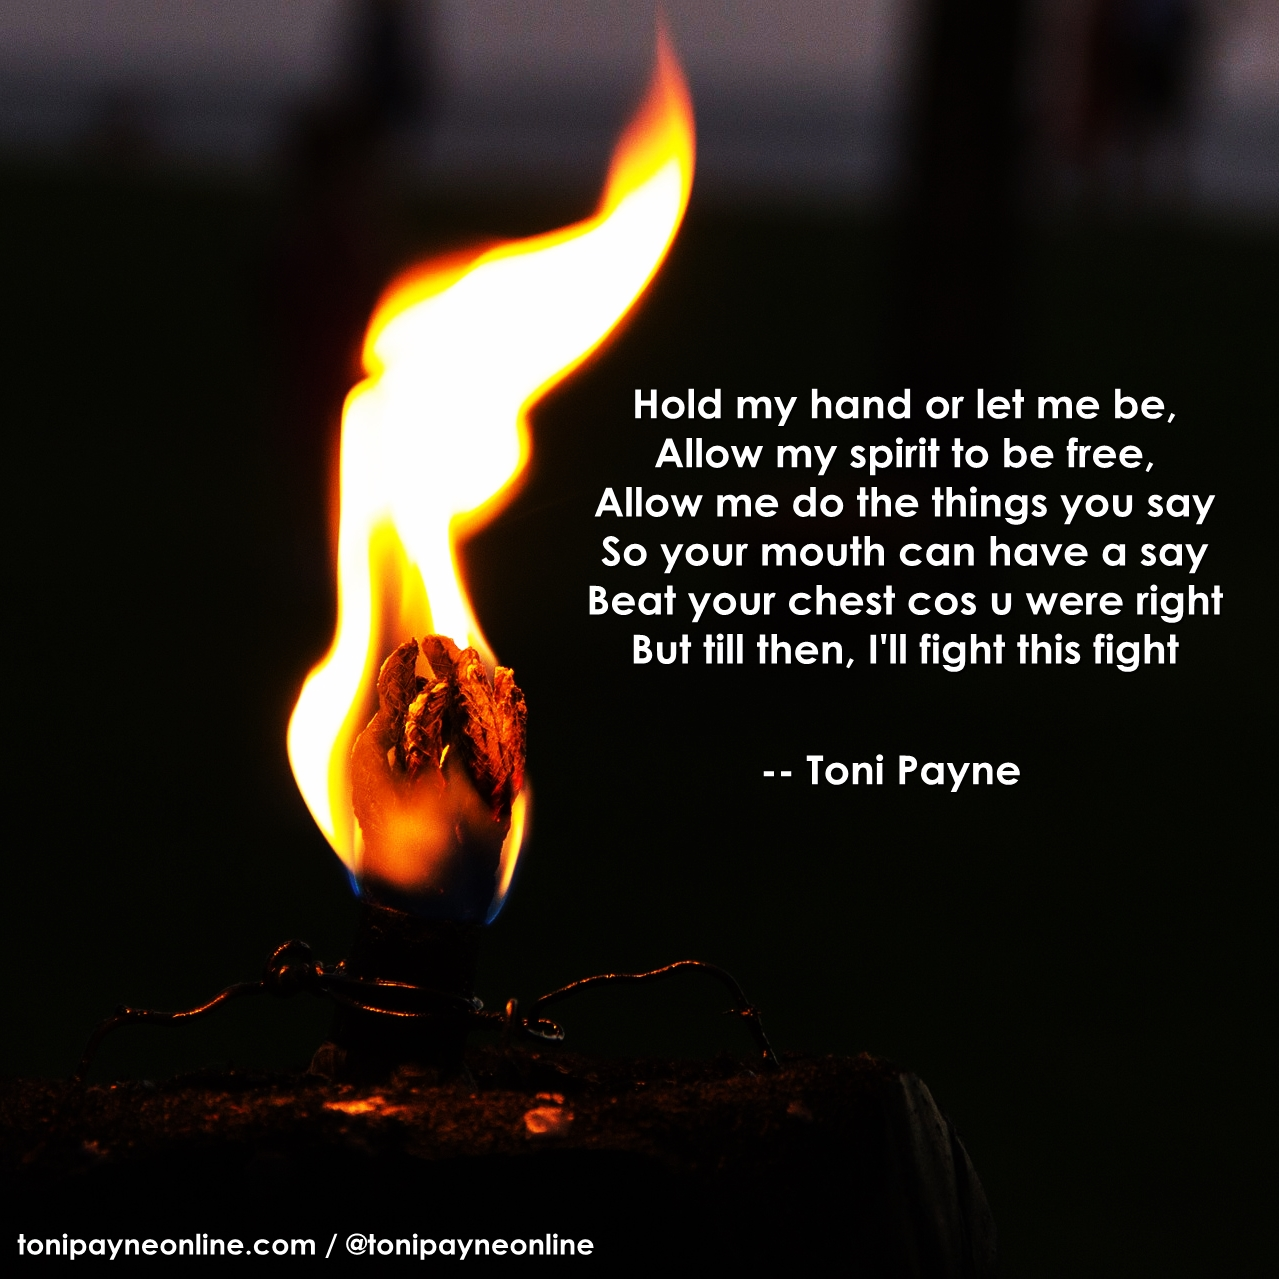 Poetry Quote - let the headline - Toni Payne